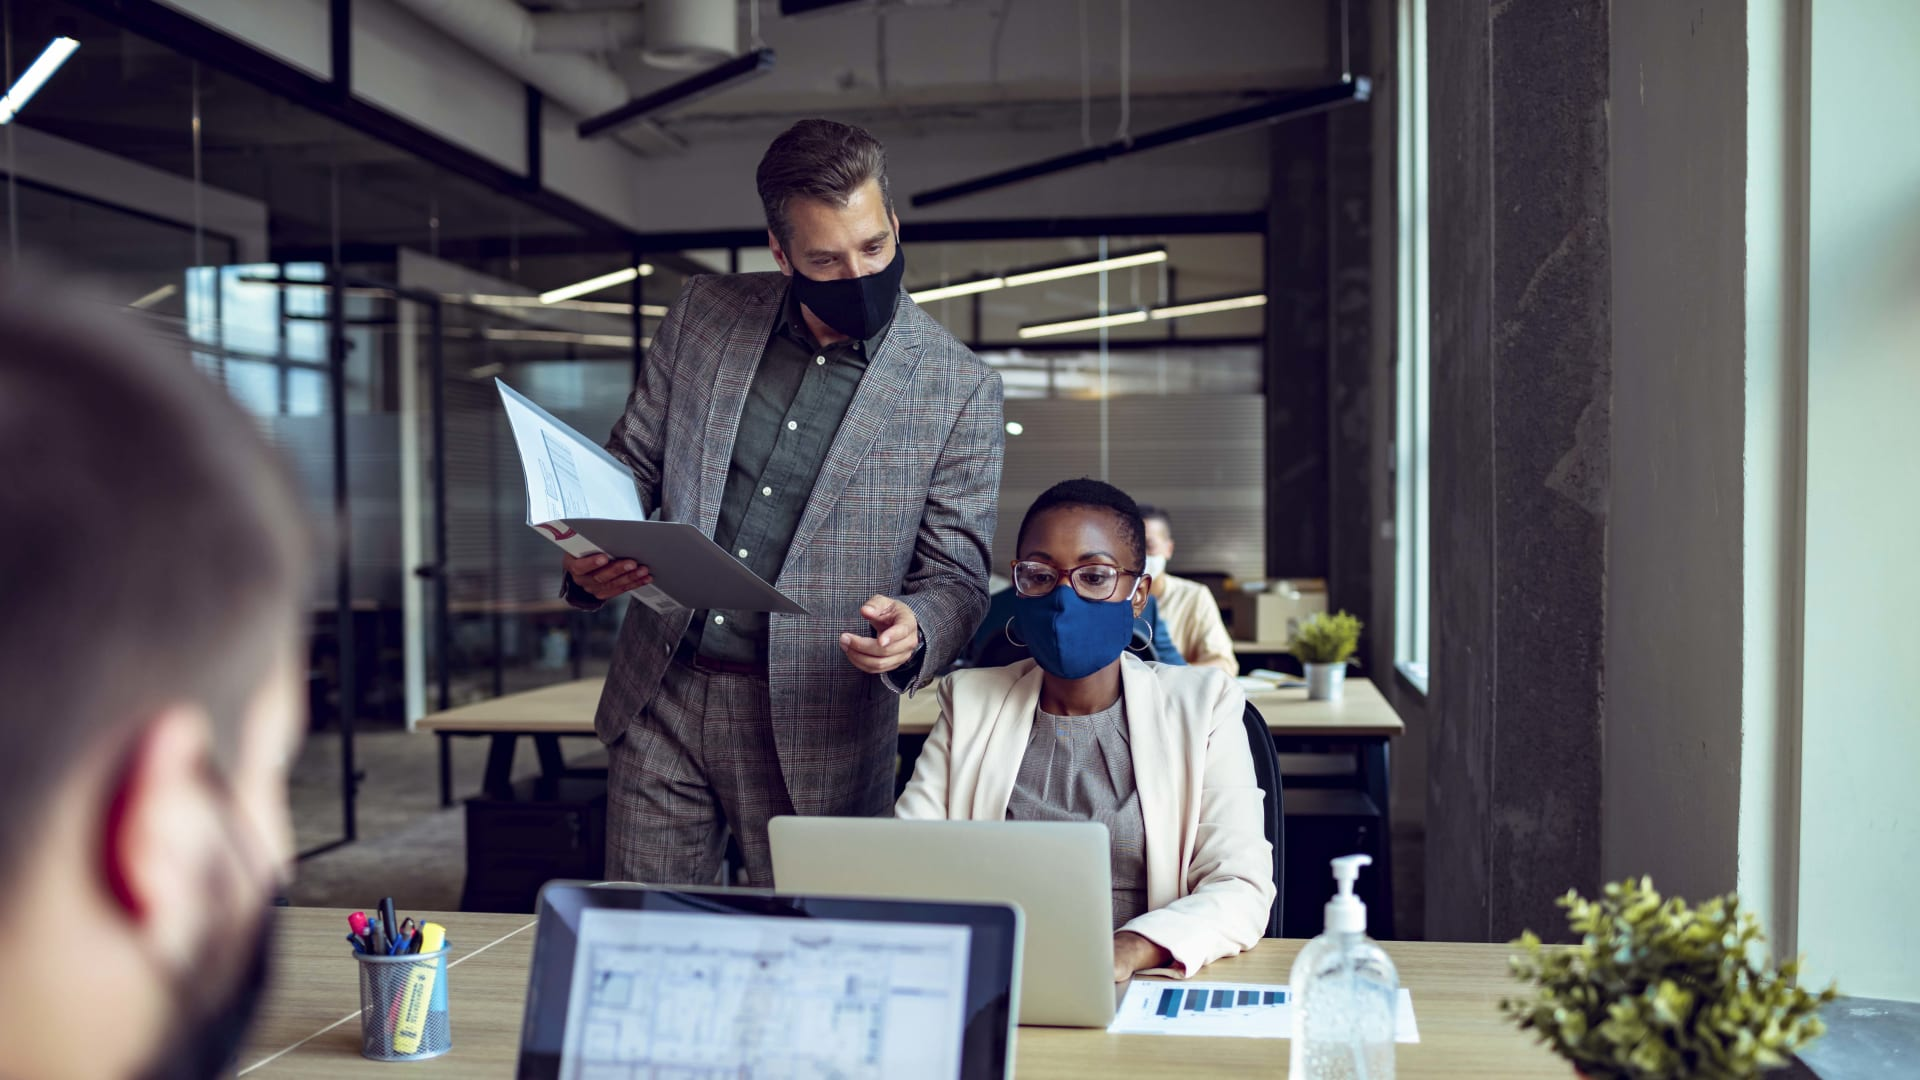 What You Should Not Say When Employees Return to Work